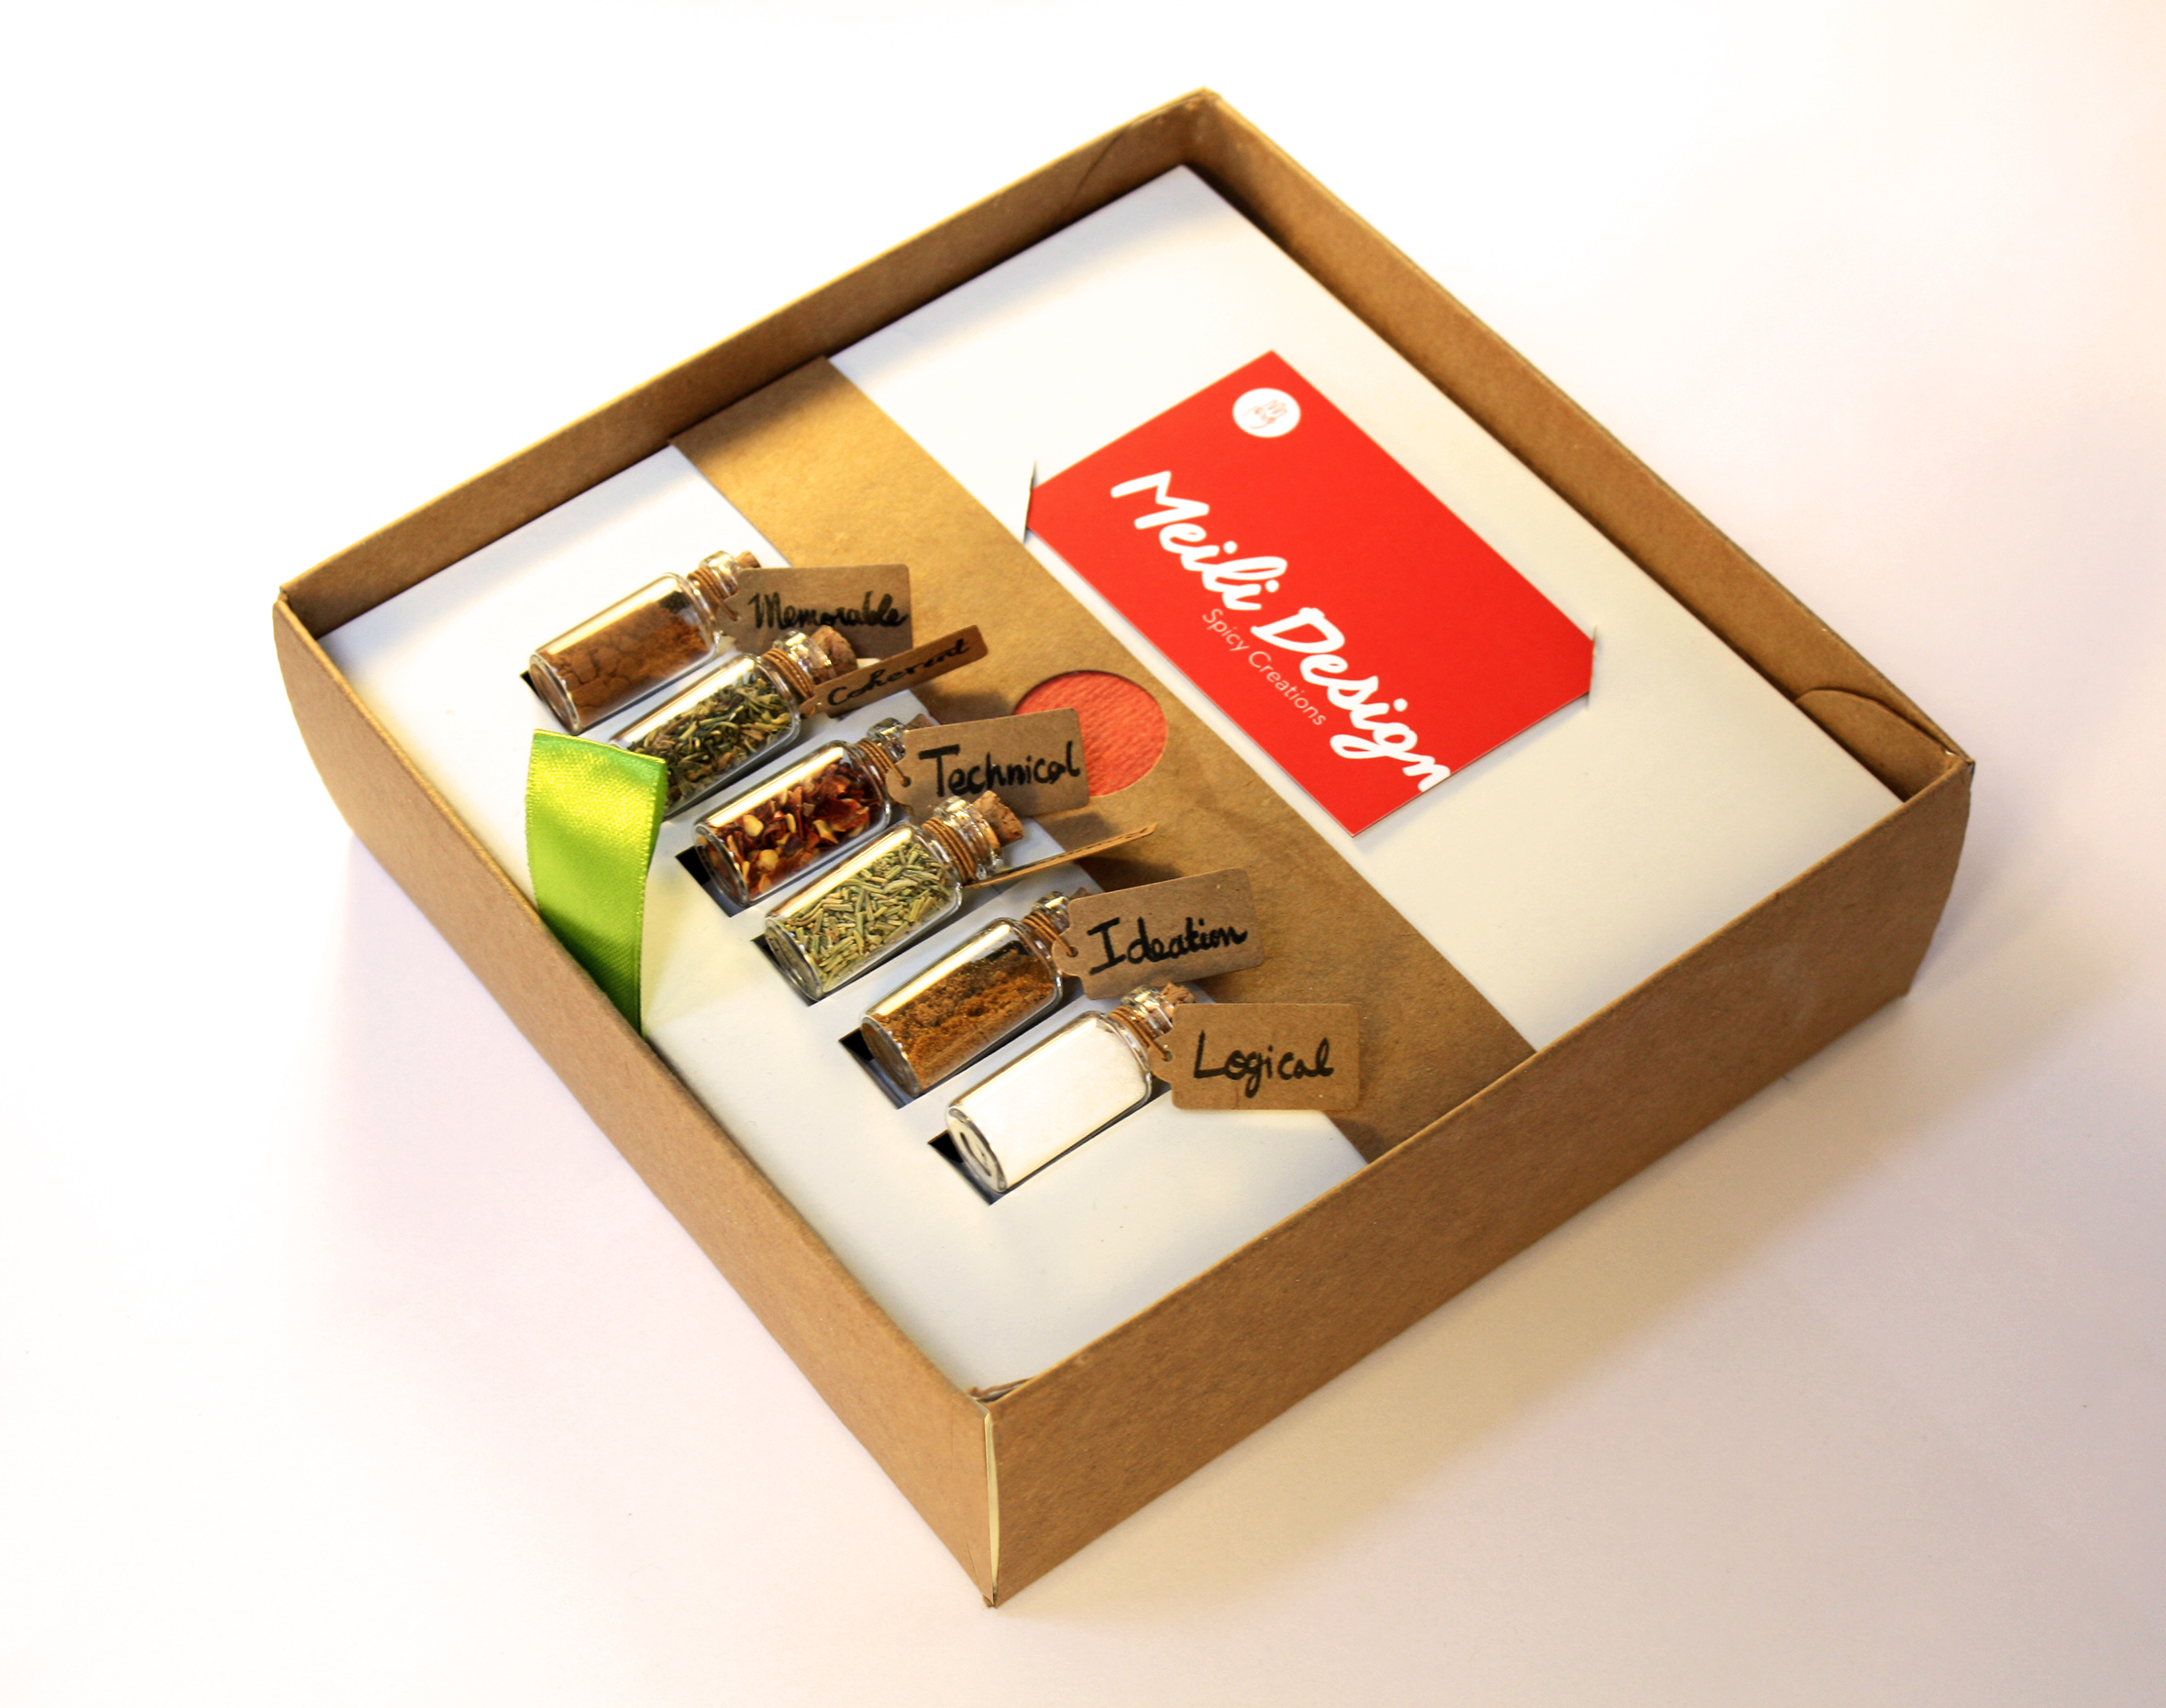 the 6 spices vials and business card